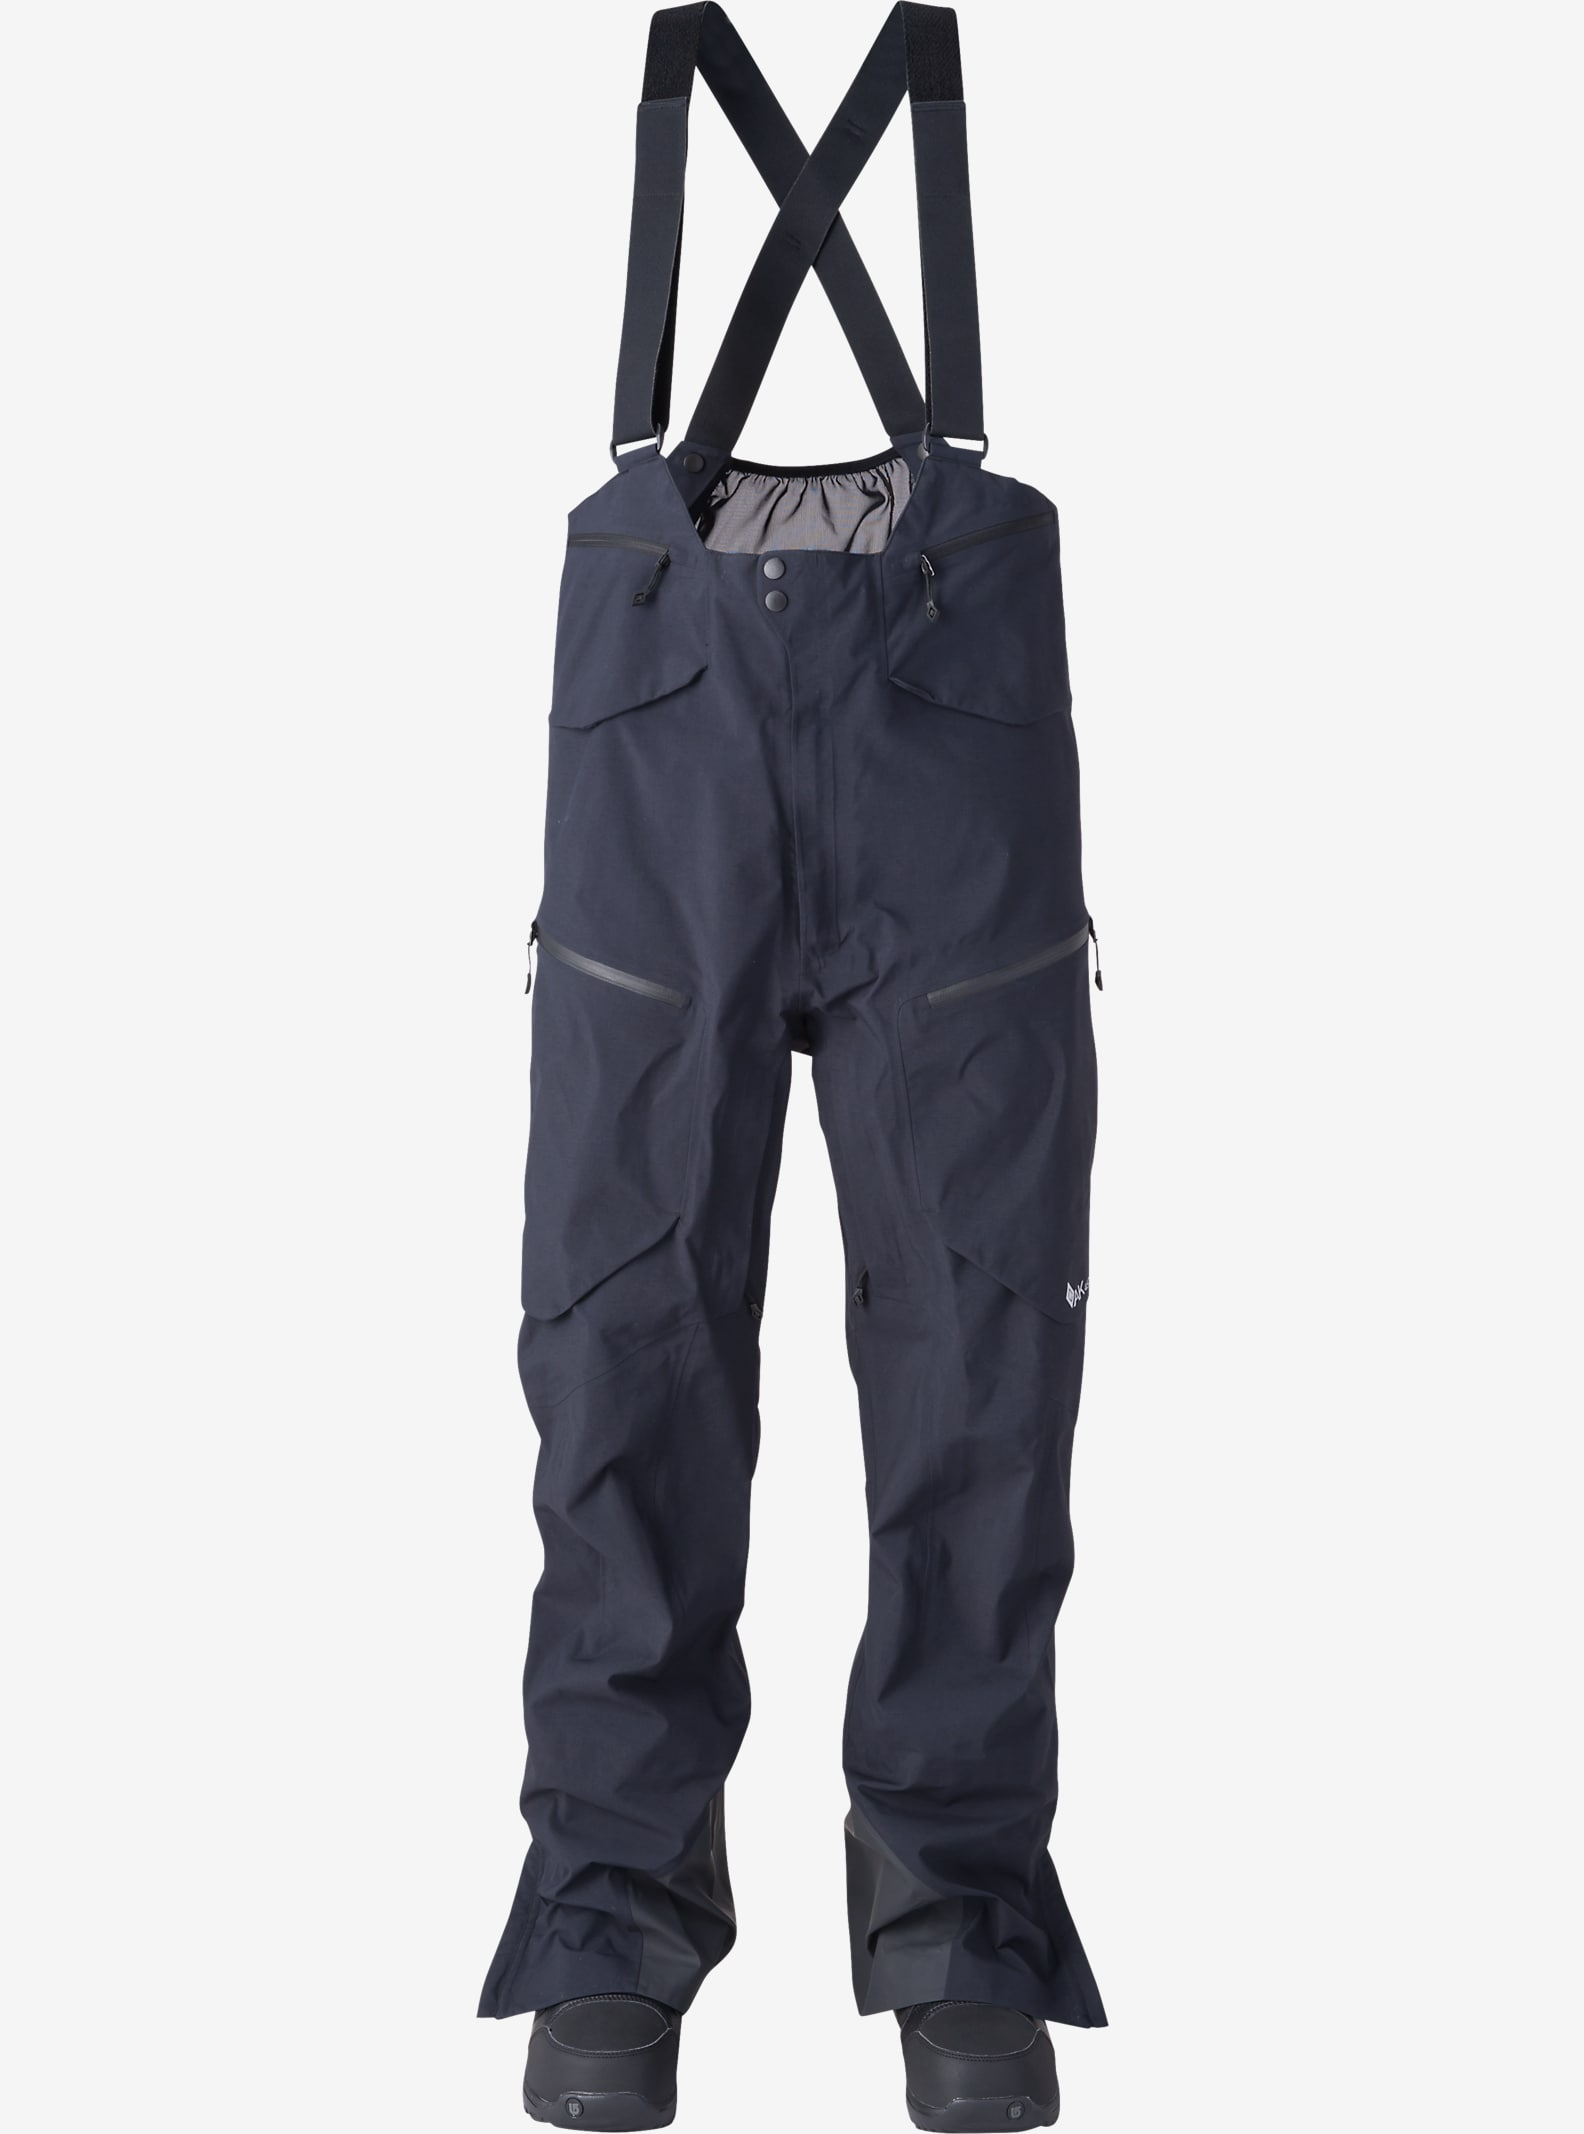 Burton AK457 Hi-Top Pant shown in True Black